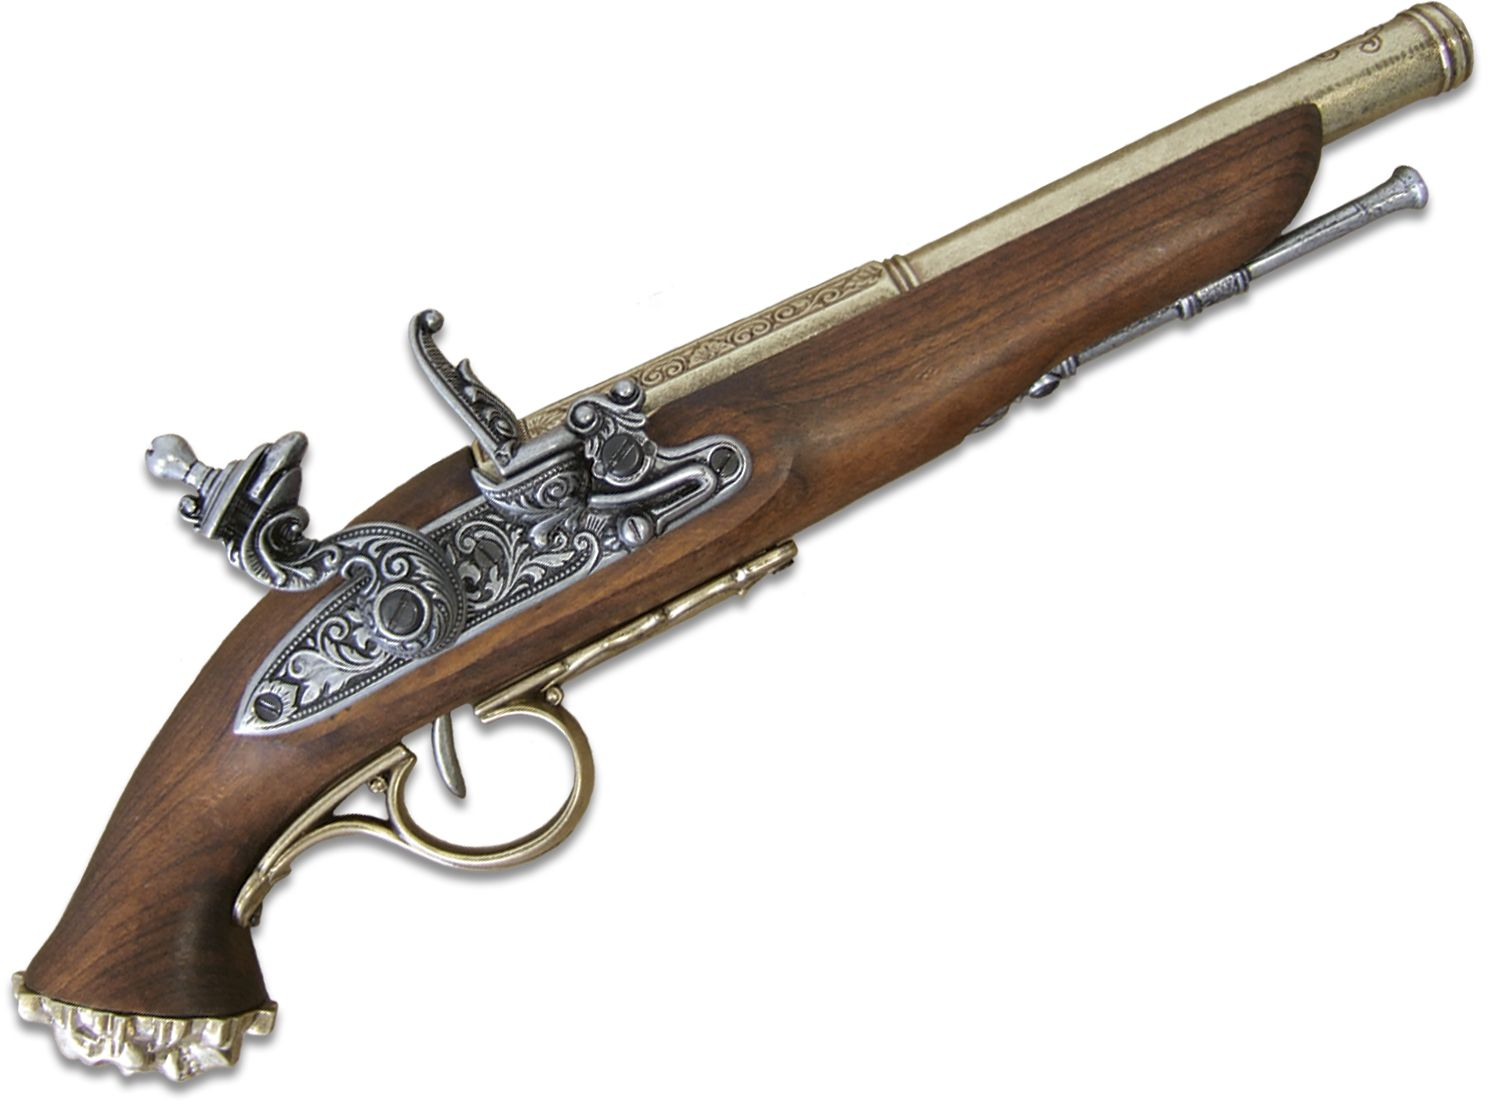 Denix Replica 18th Century Flintlock Pirate Pistol, Brass